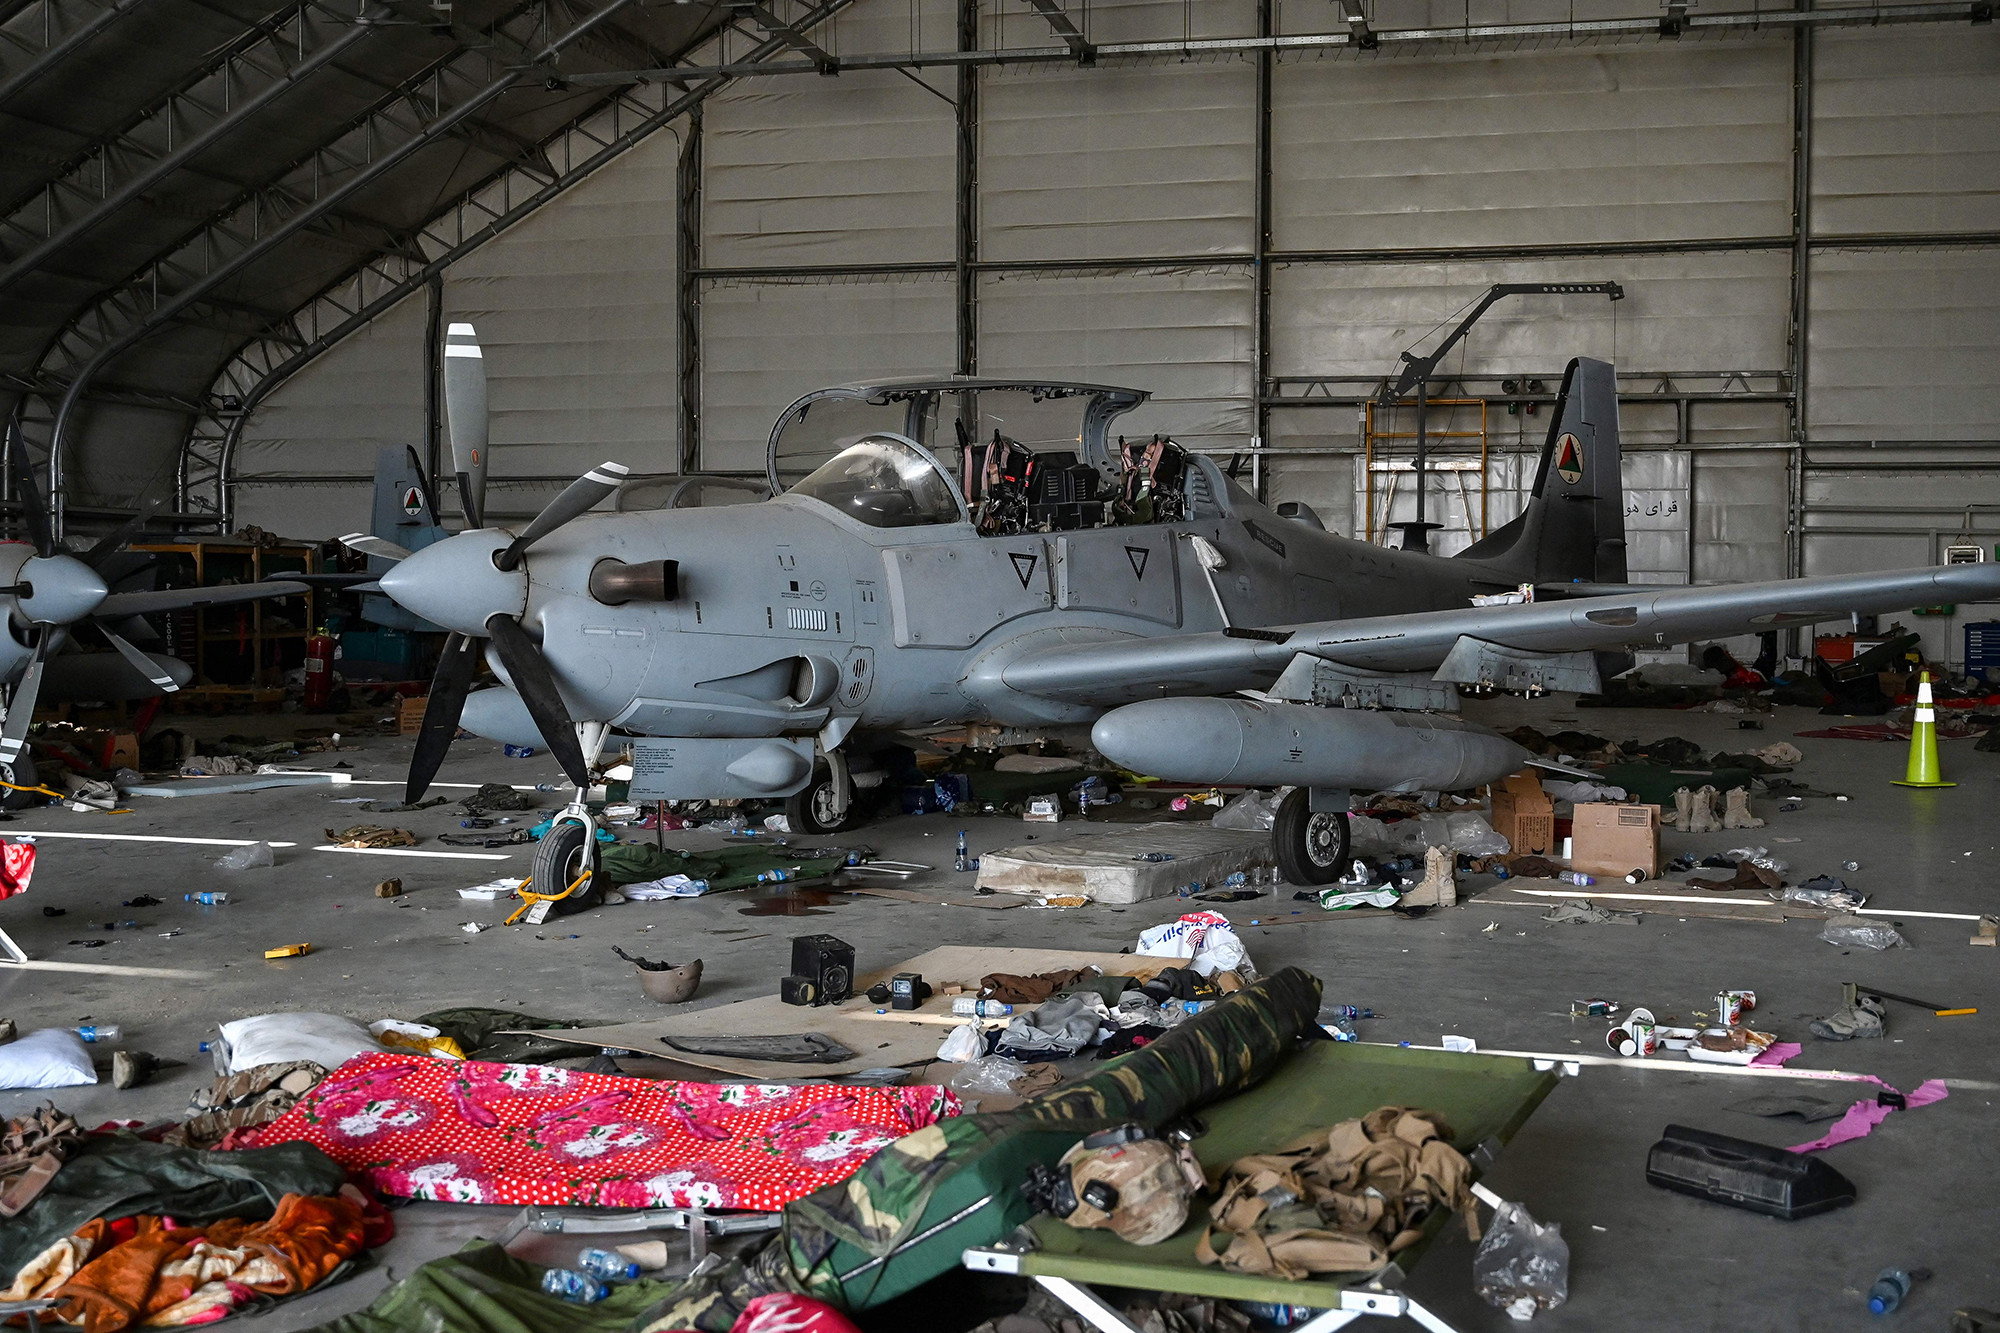 An Afghan Air Force A-29 attack aircraft is pictured inside a hangar